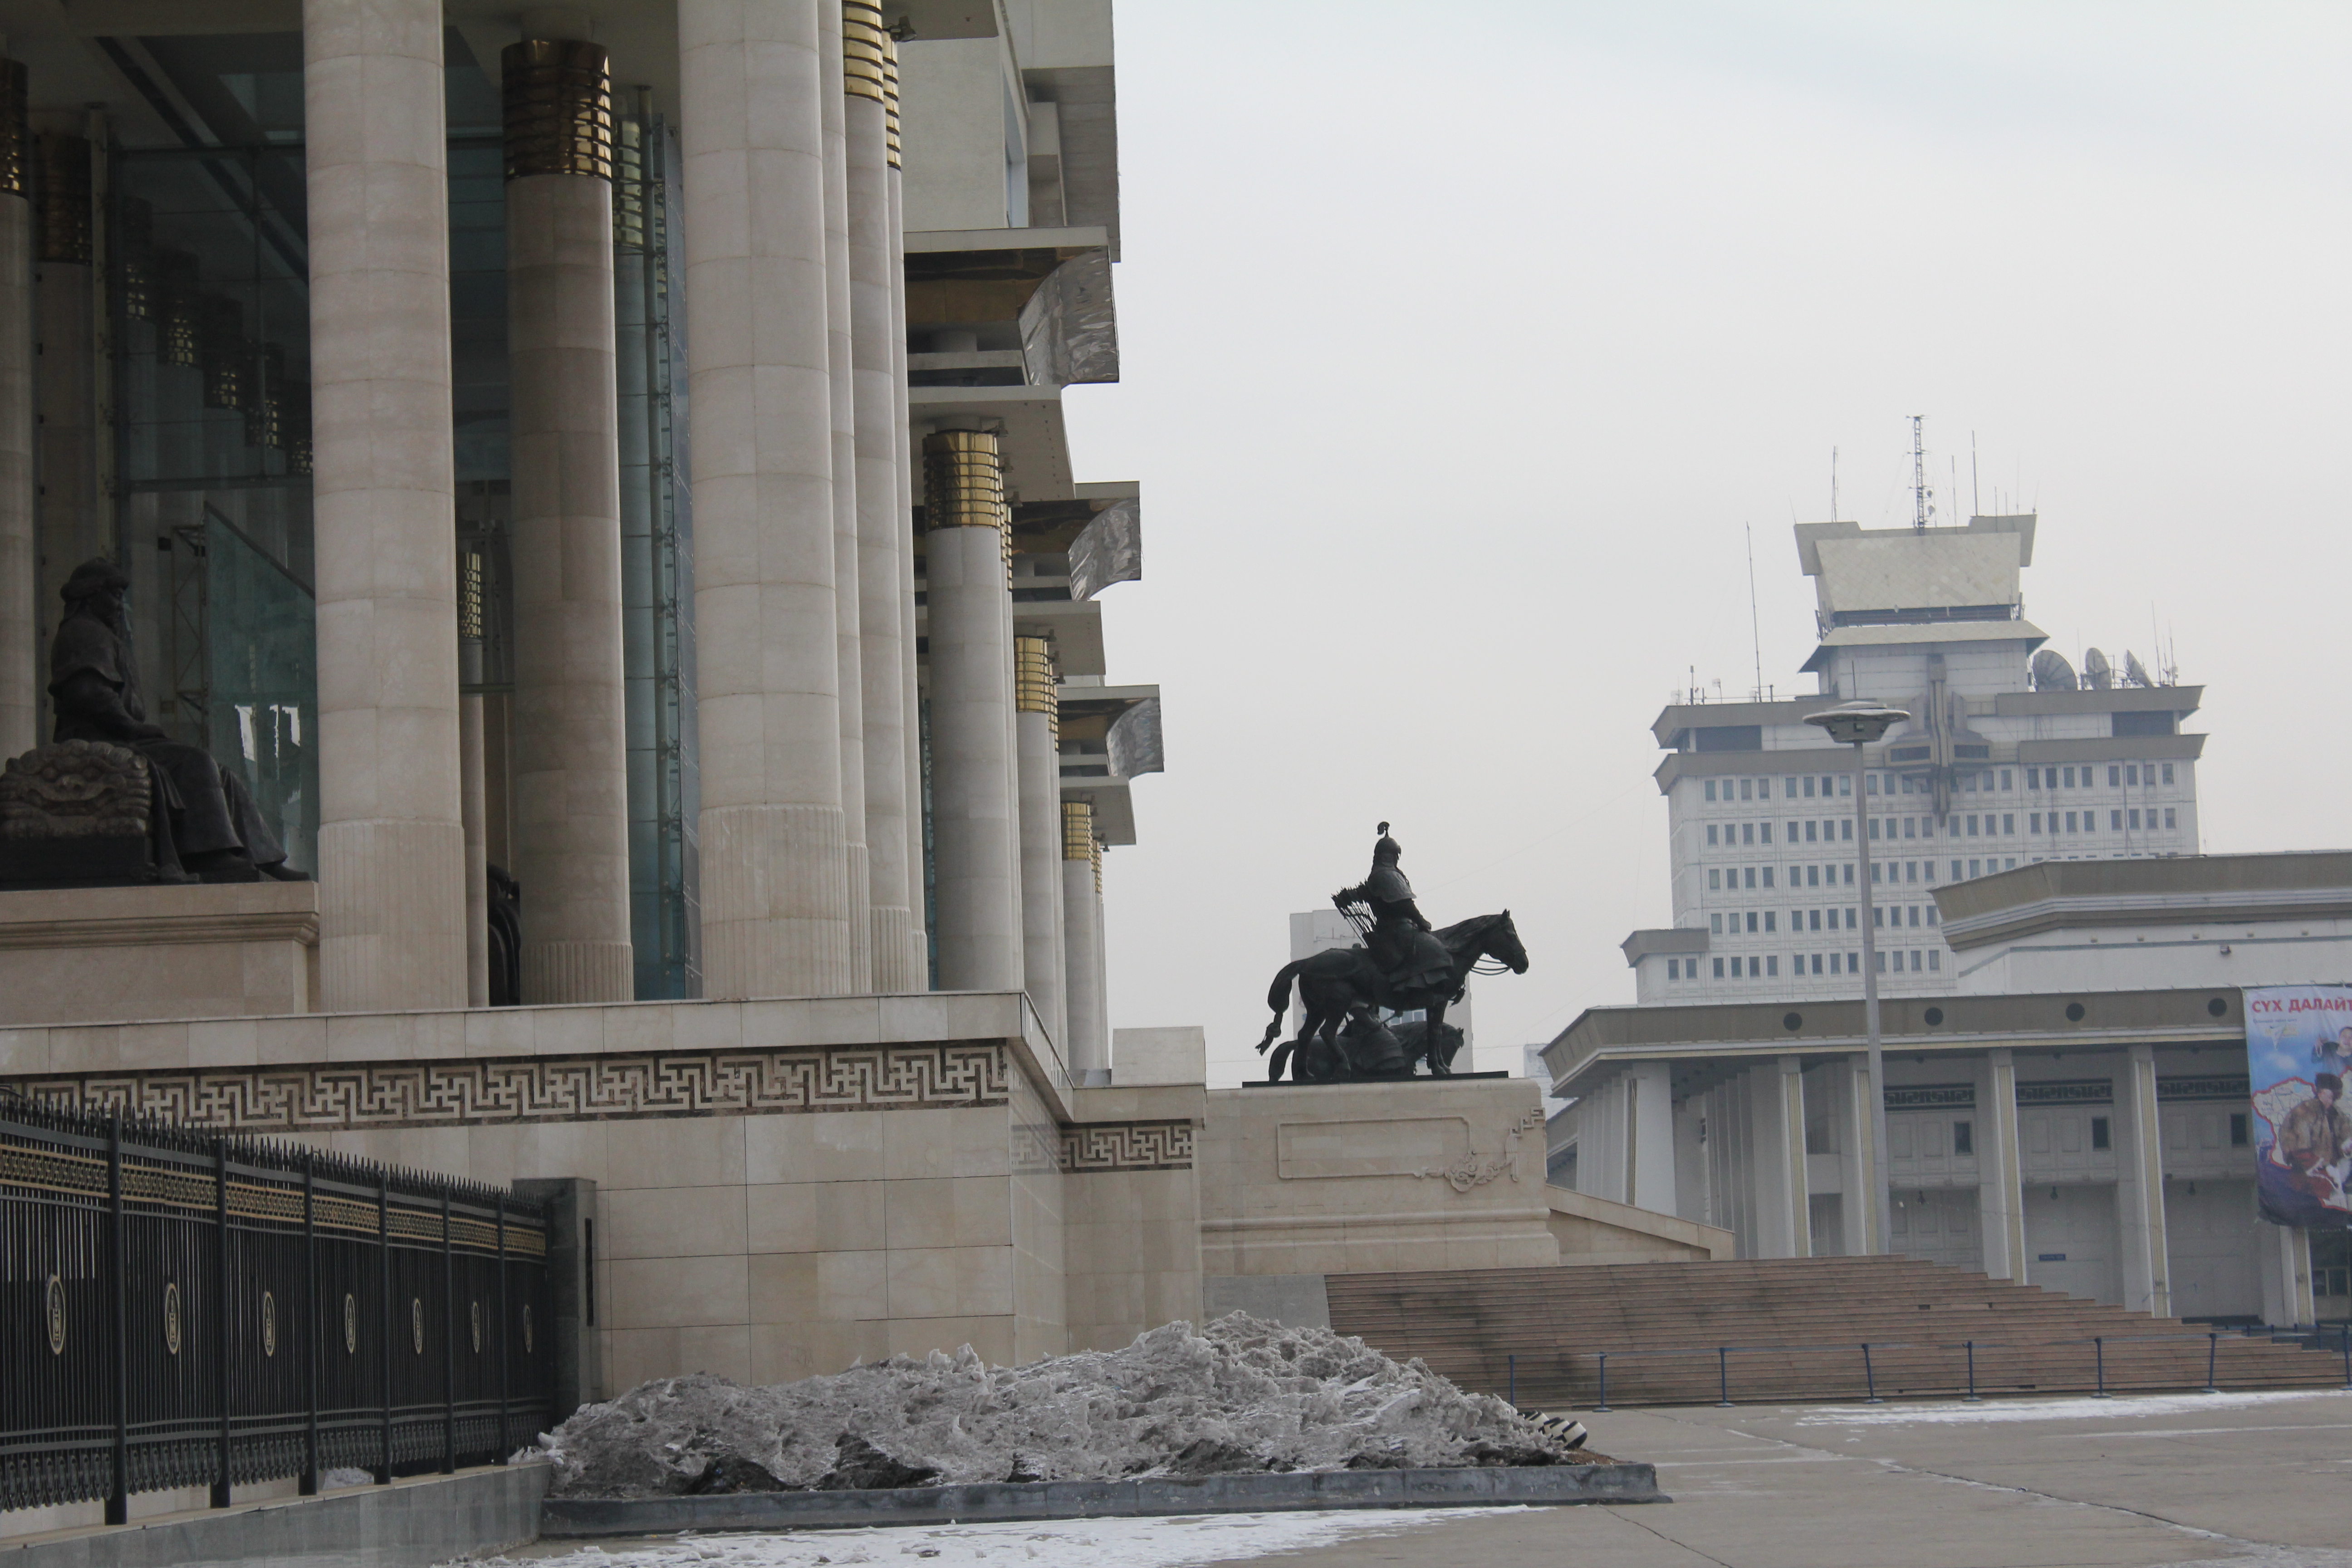 Thinking about democracy in Mongolia